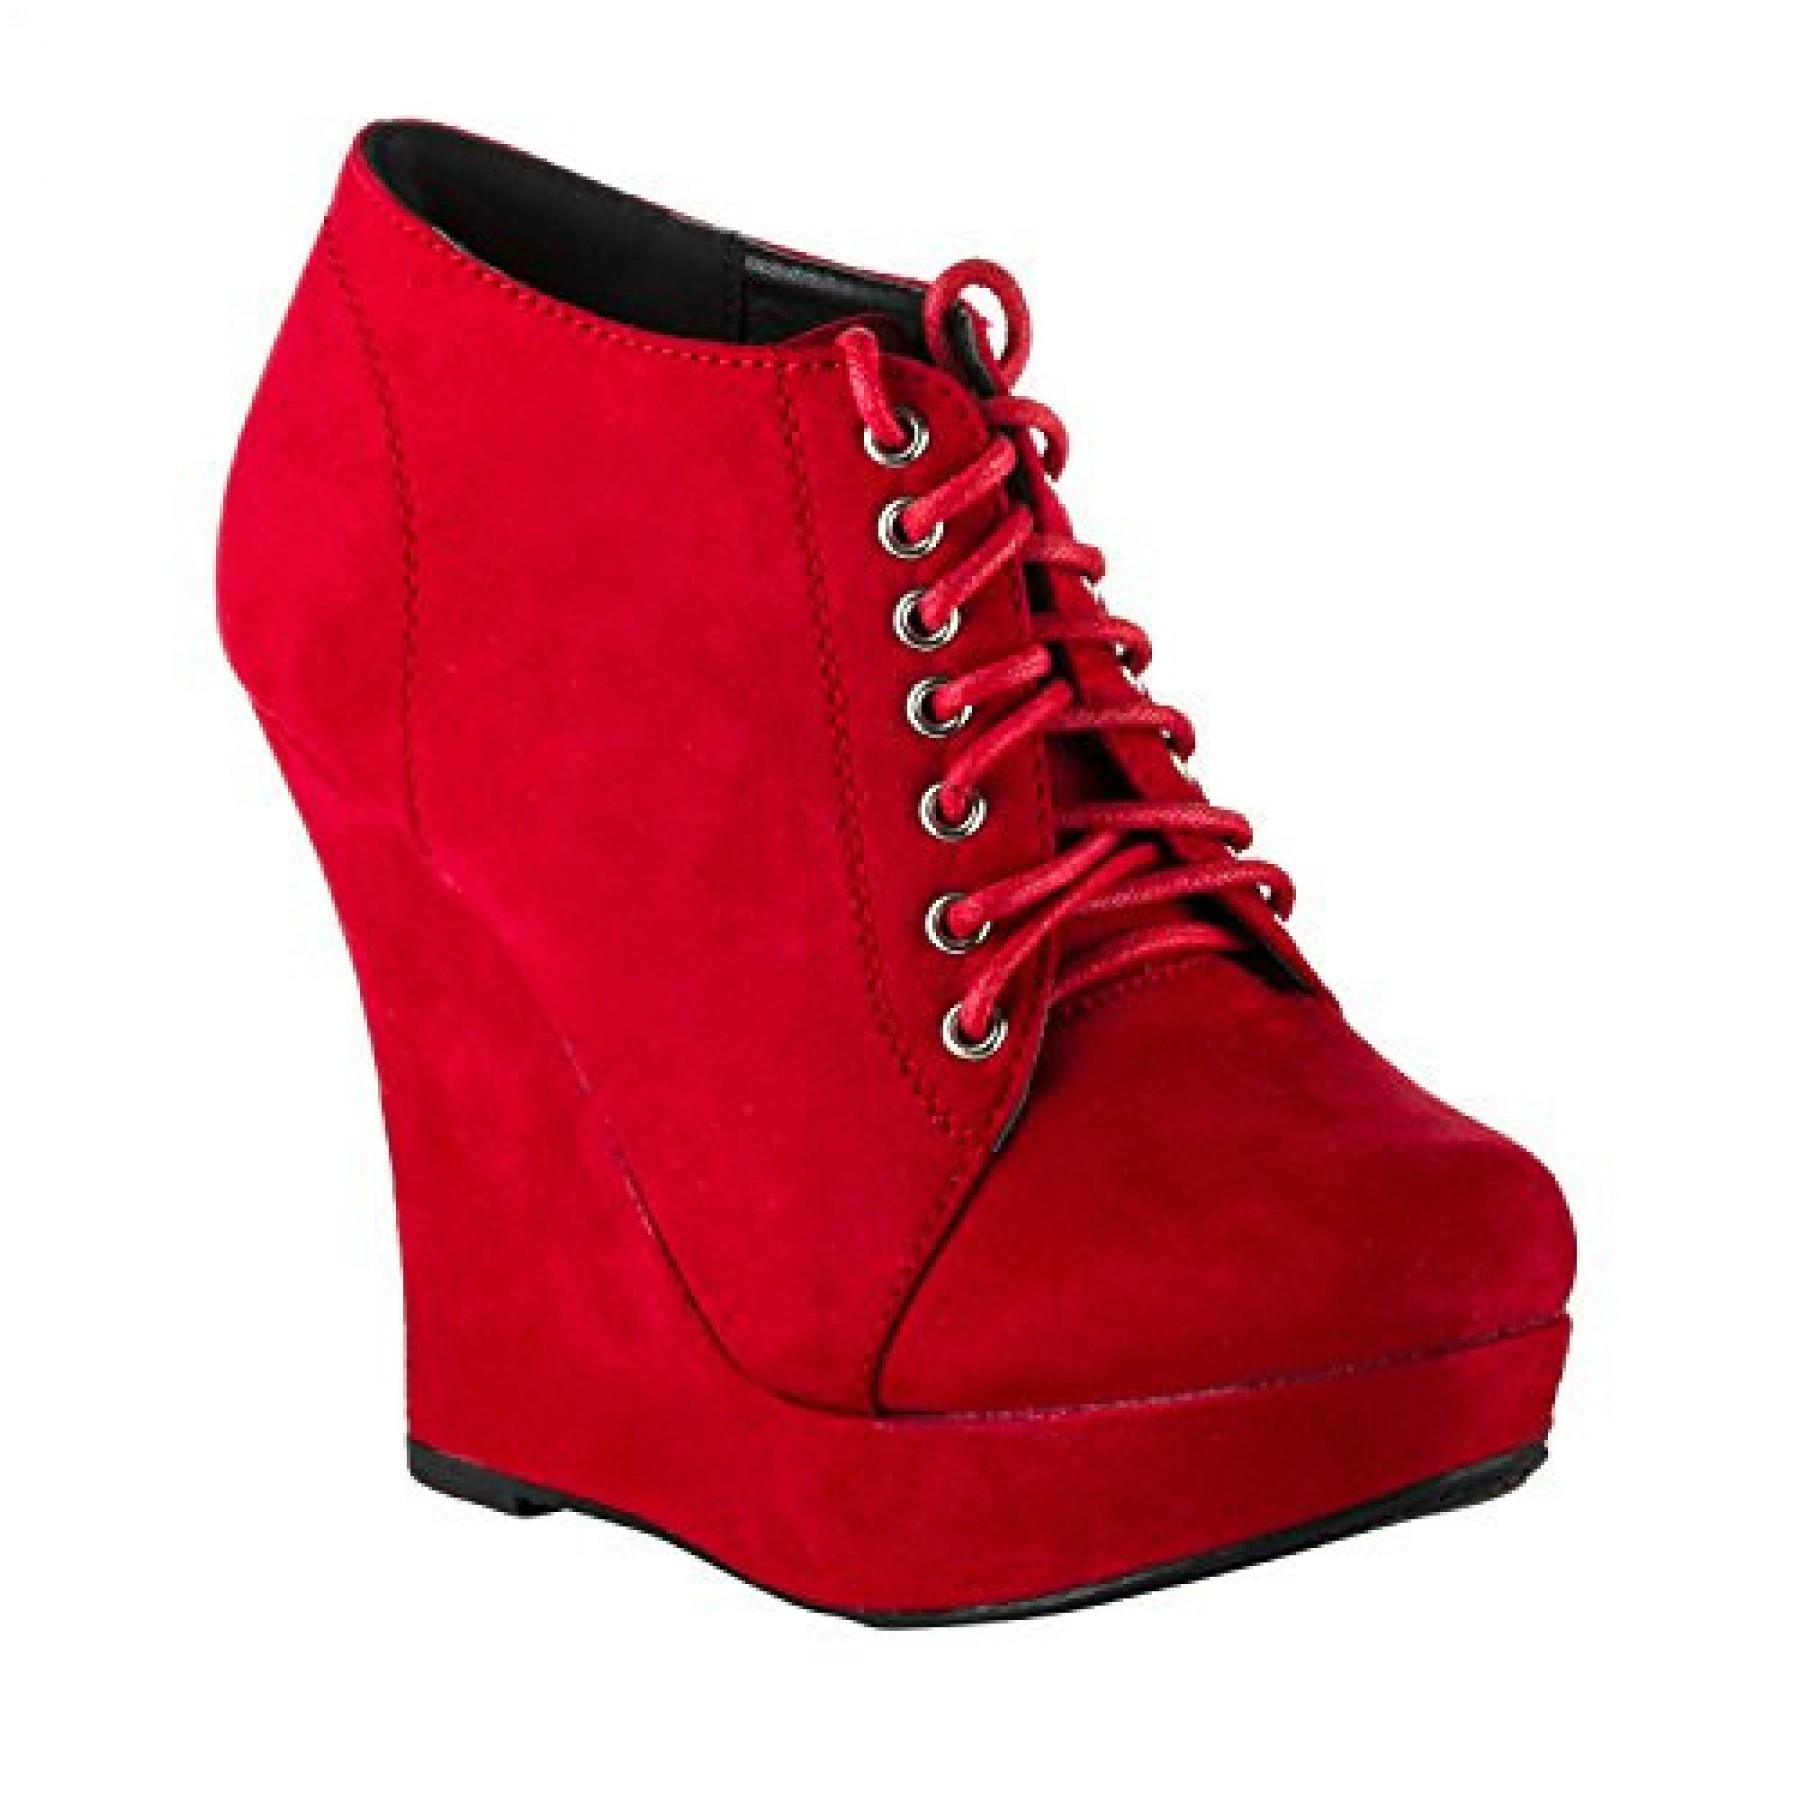 Women's Red Krisella Stylish Manmade Wedge Bootie with Lace-Up Front